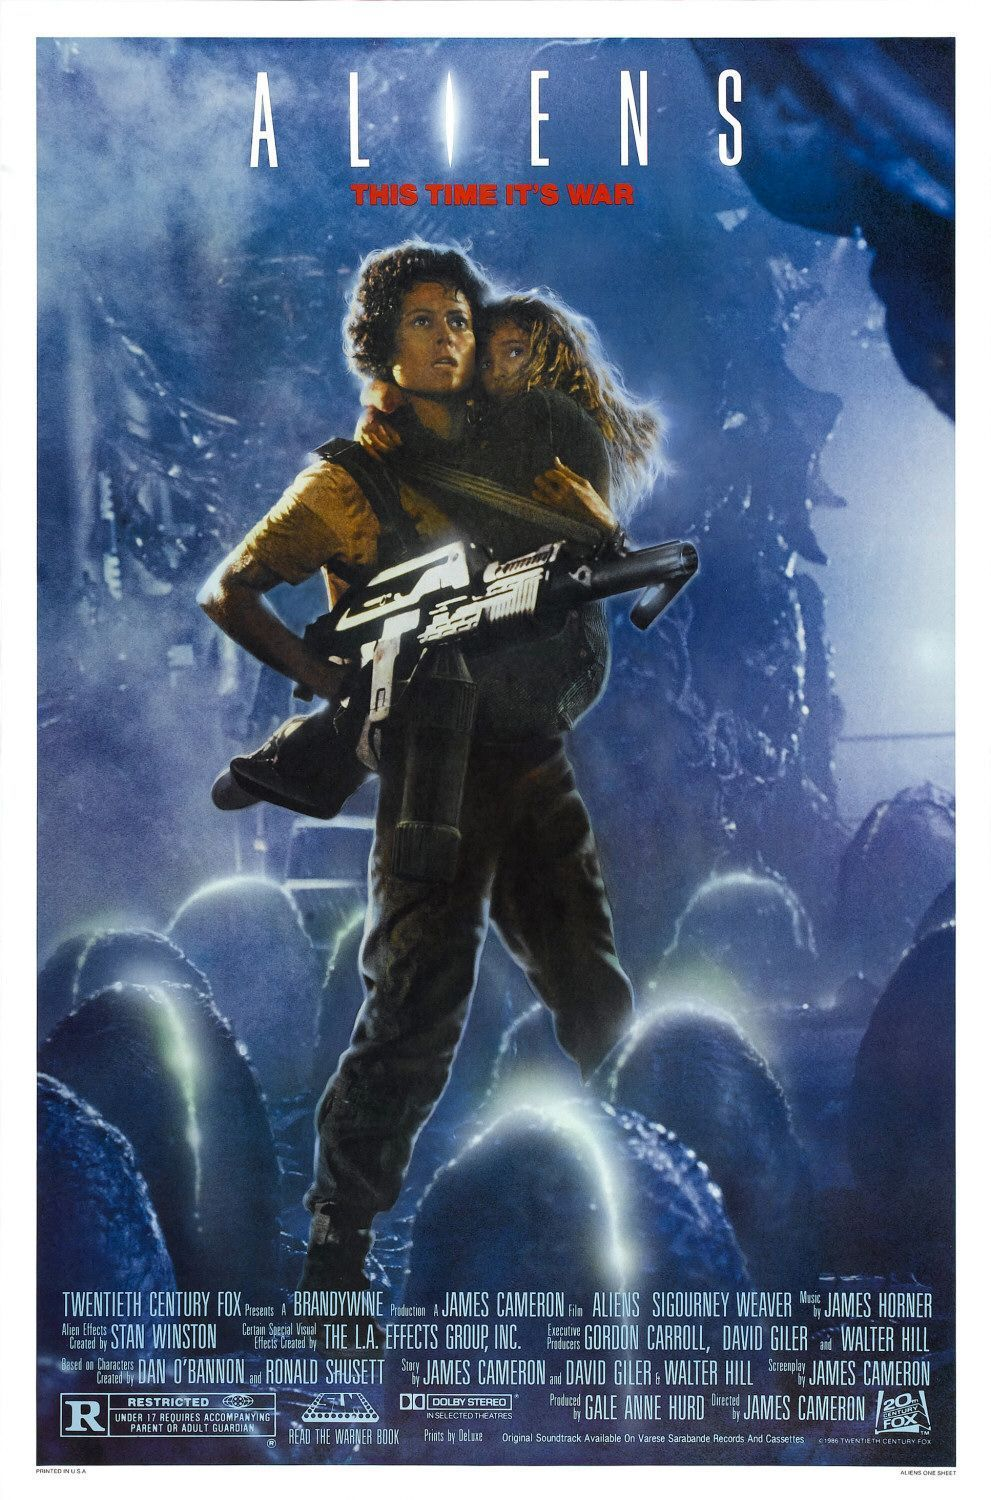 The poster from Aliens, with Sigourney Weaver holding a little girl as well as a huge gun.